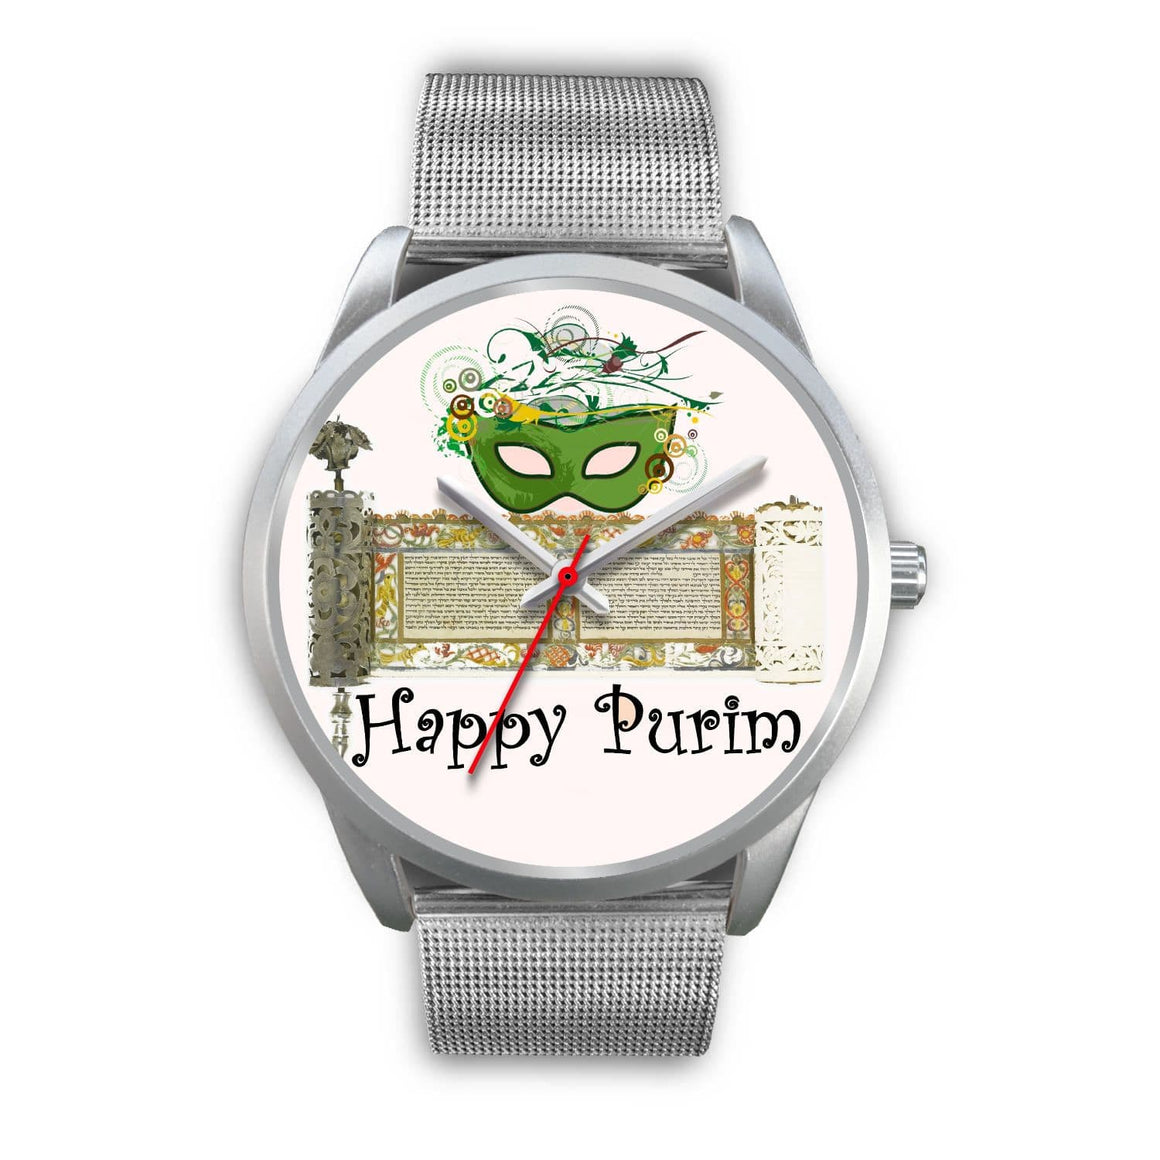 Silver Purim Wrist Watches in Colors Happy Purim! Silver Watch Mens 40mm Silver Metal Link